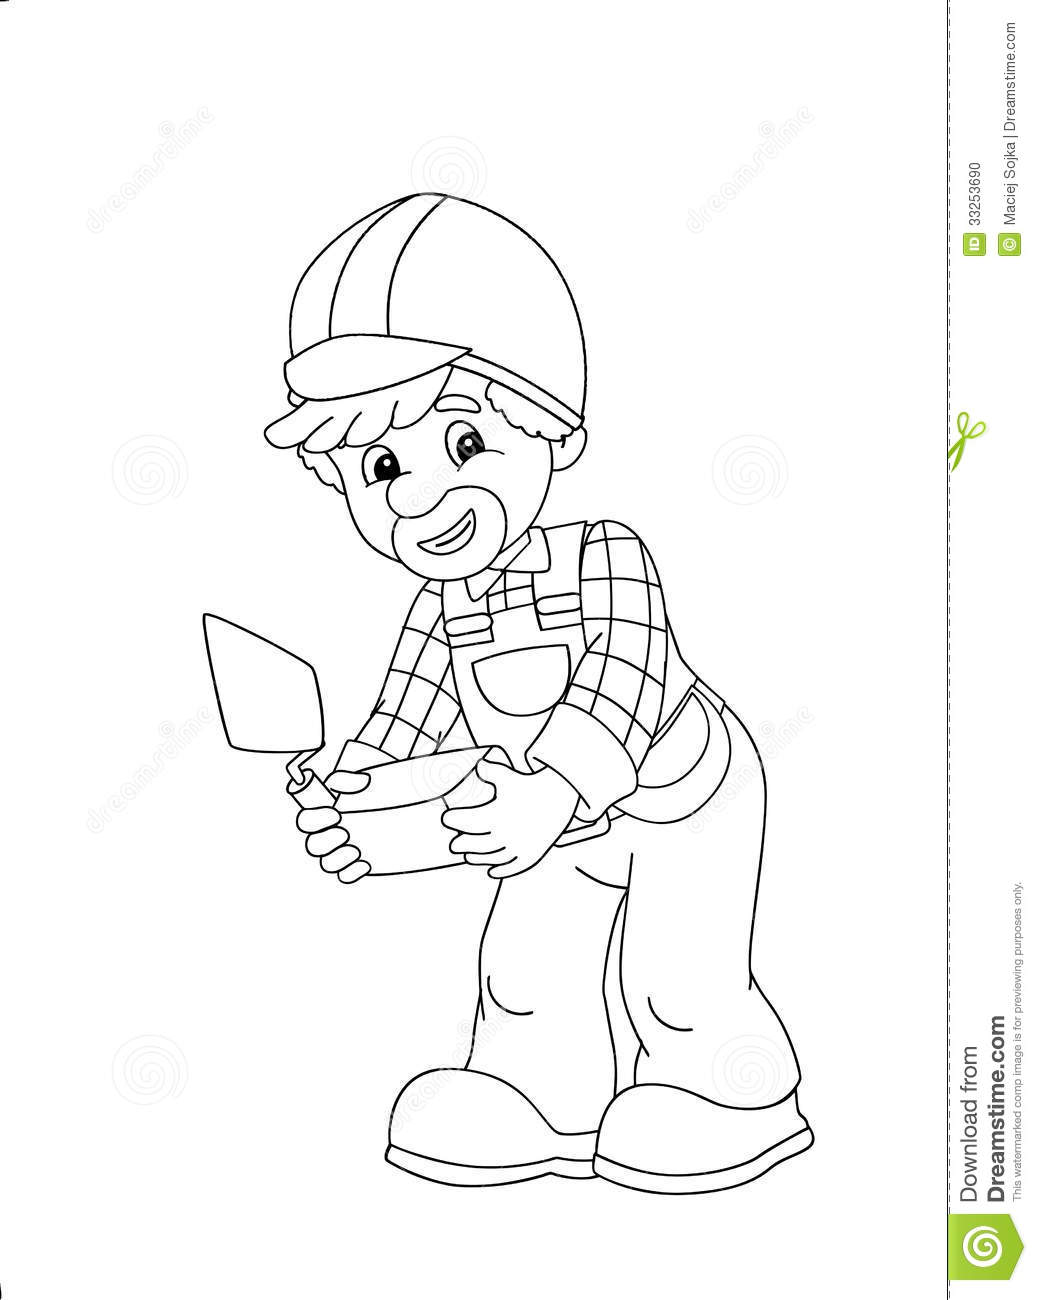 royalty free stock photo download the coloring plate construction worker - Construction Worker Coloring Page